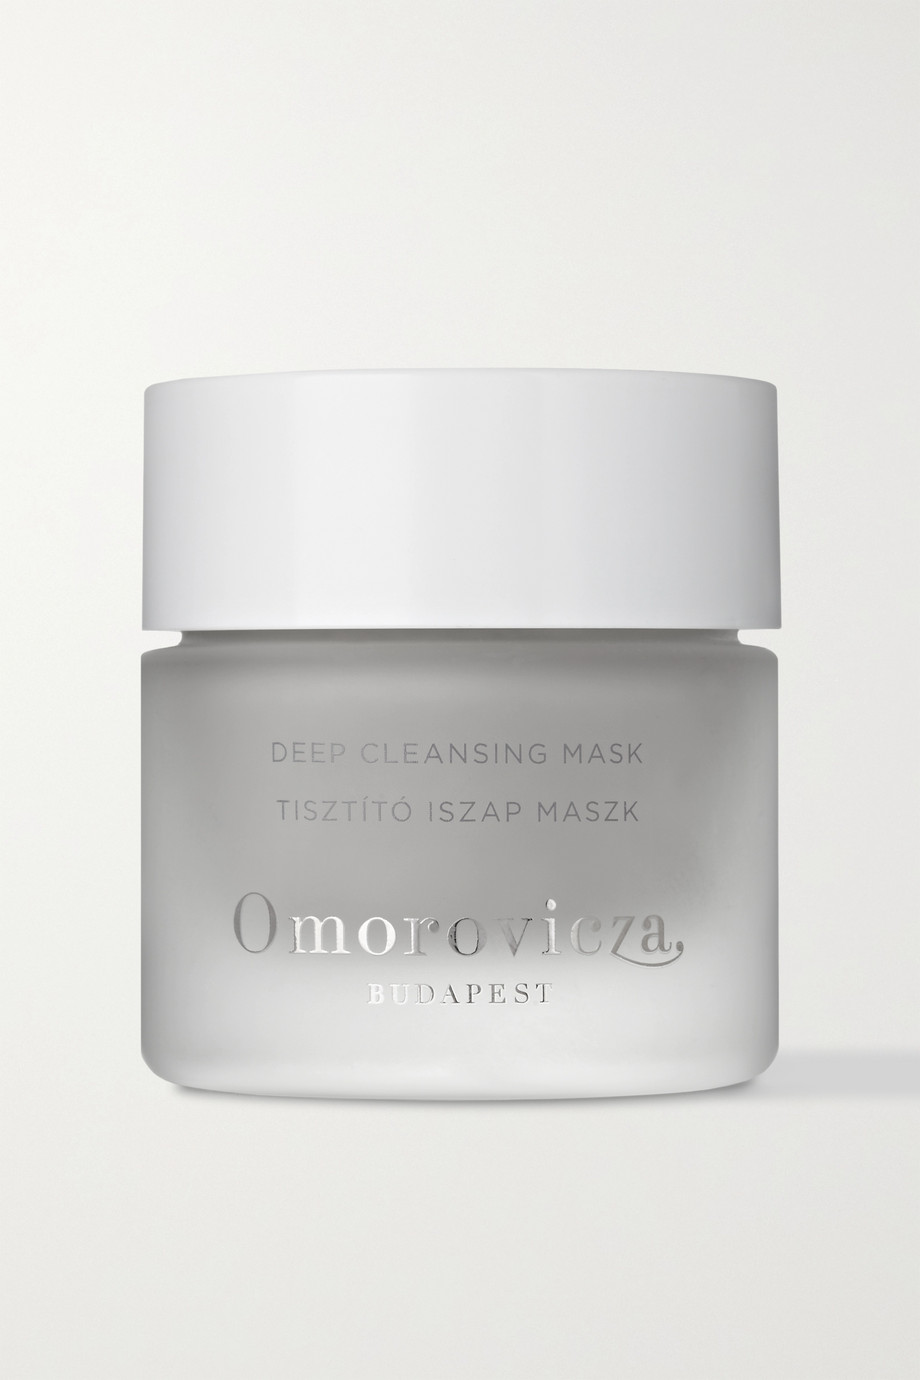 Omorovicza Deep Cleansing Mask, 50ml